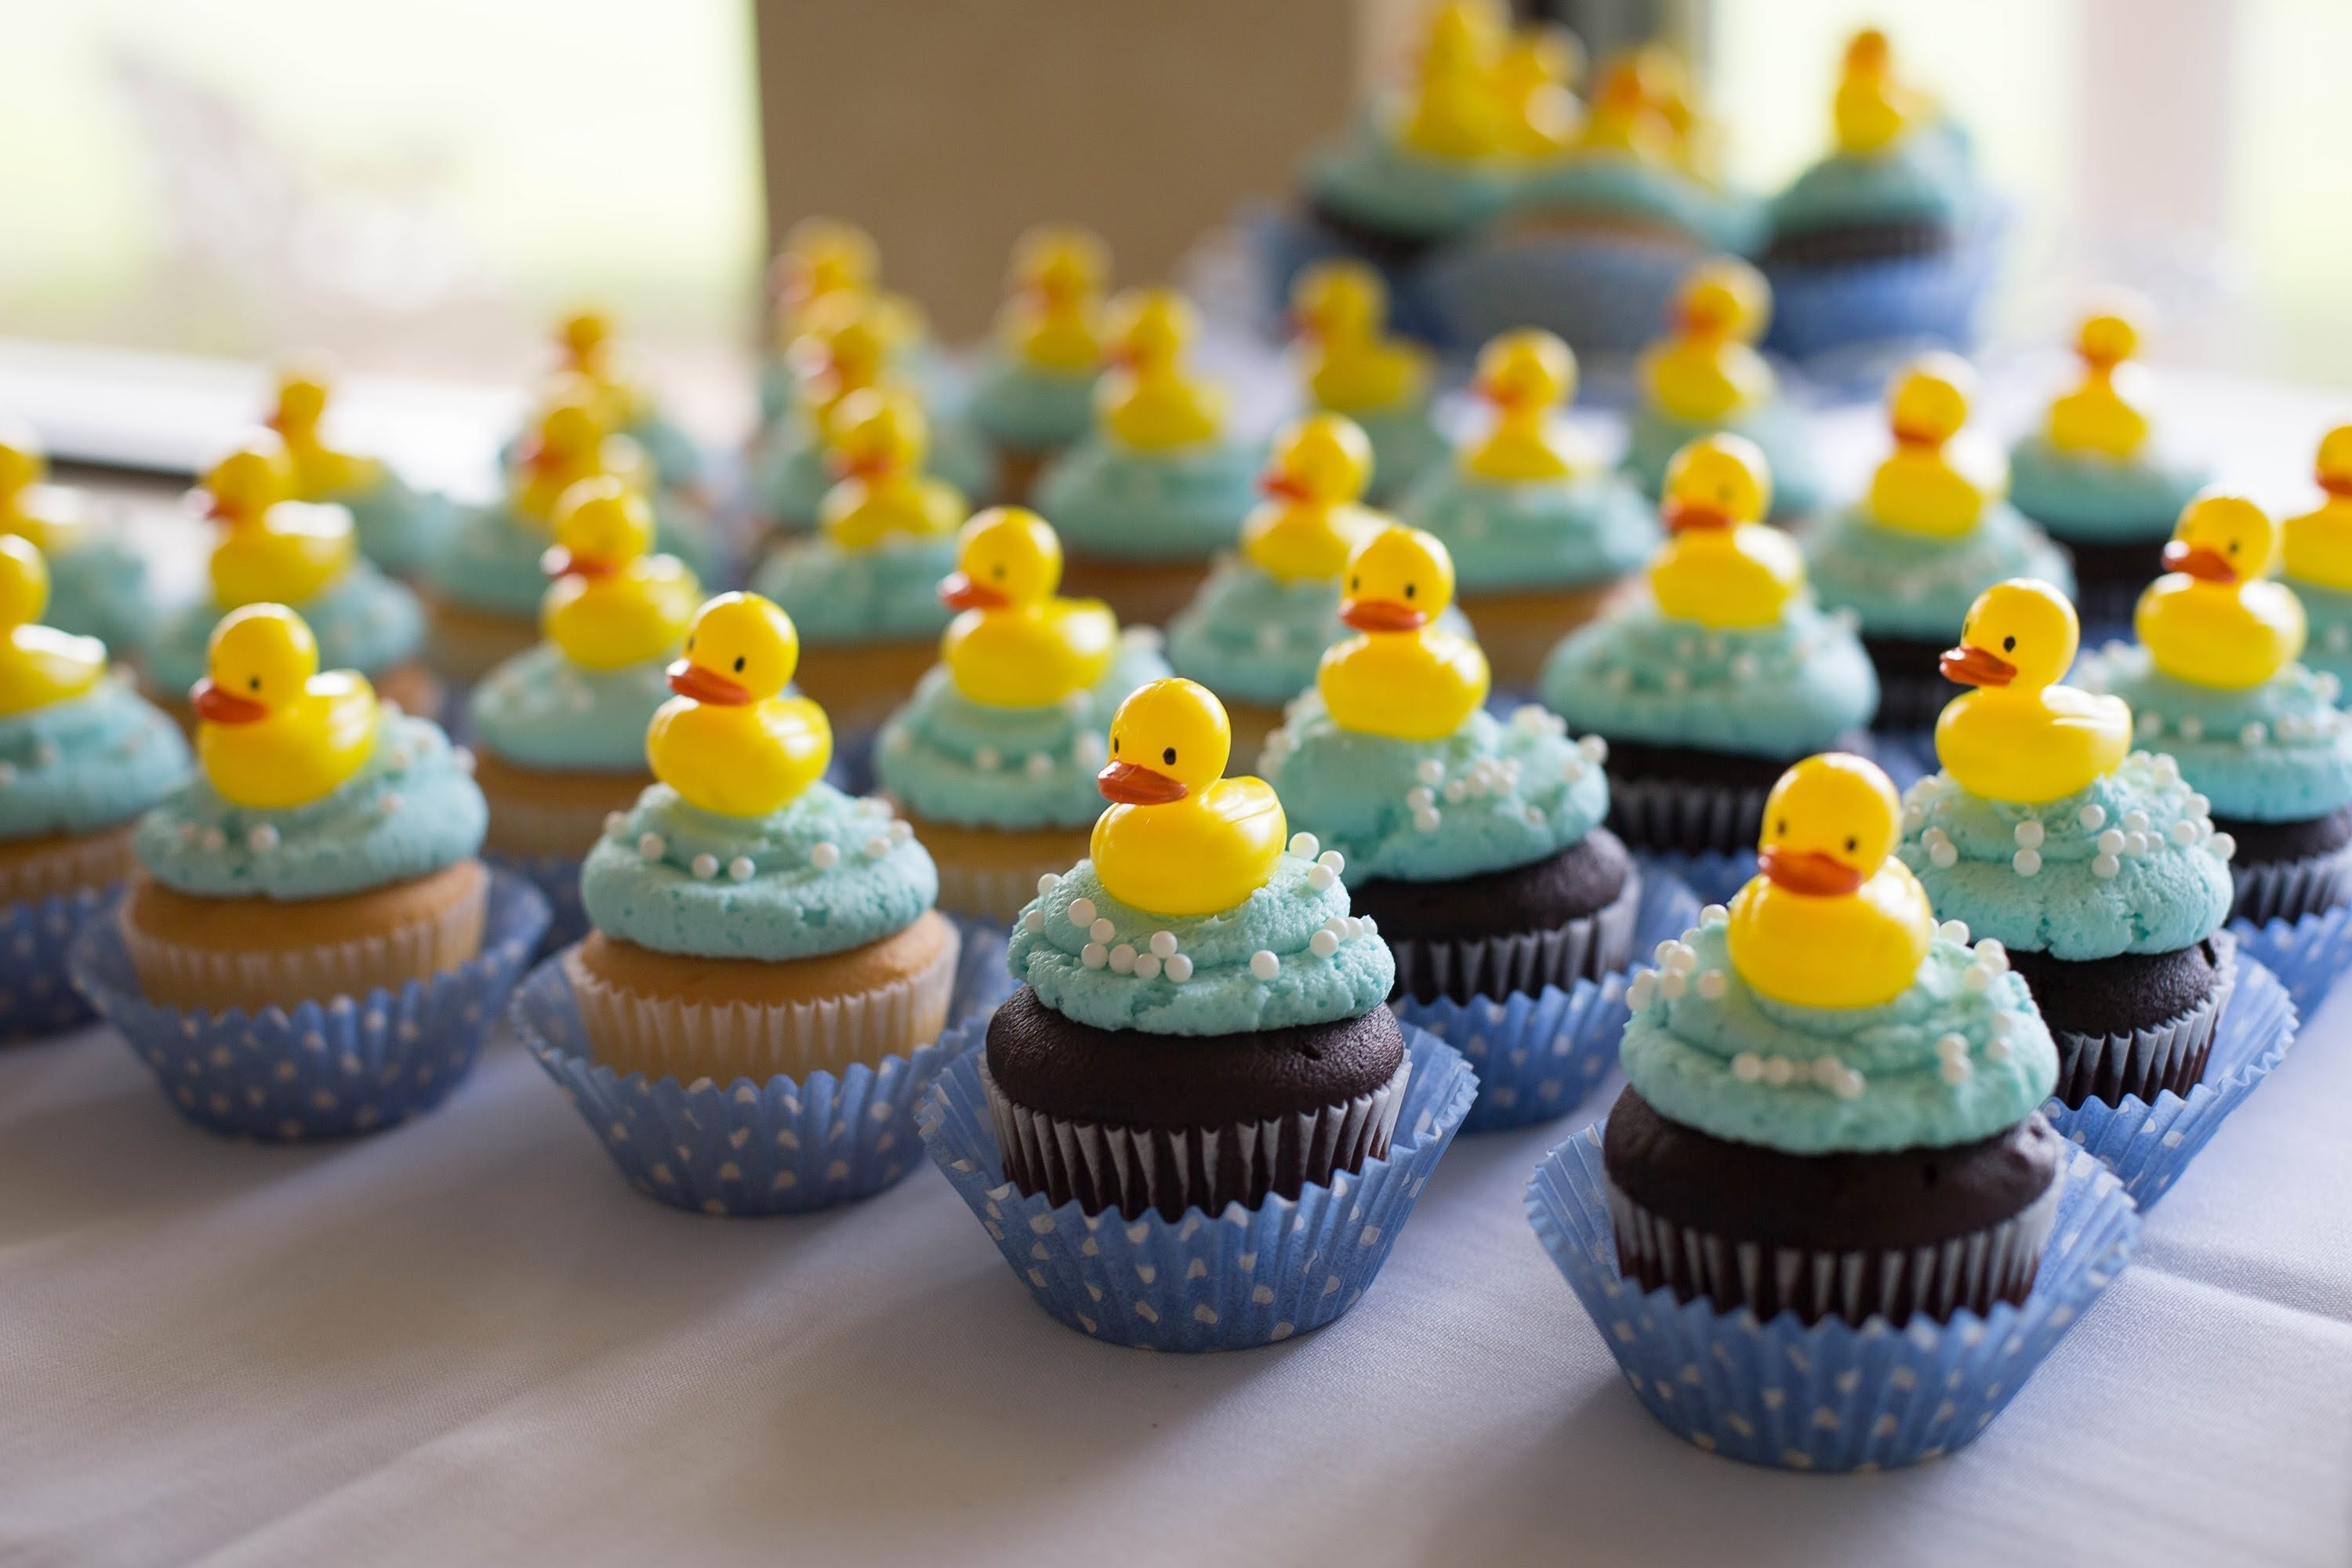 10 Stylish Rubber Ducky Baby Shower Ideas creative rubber duckie baby shower ideas youtube 2